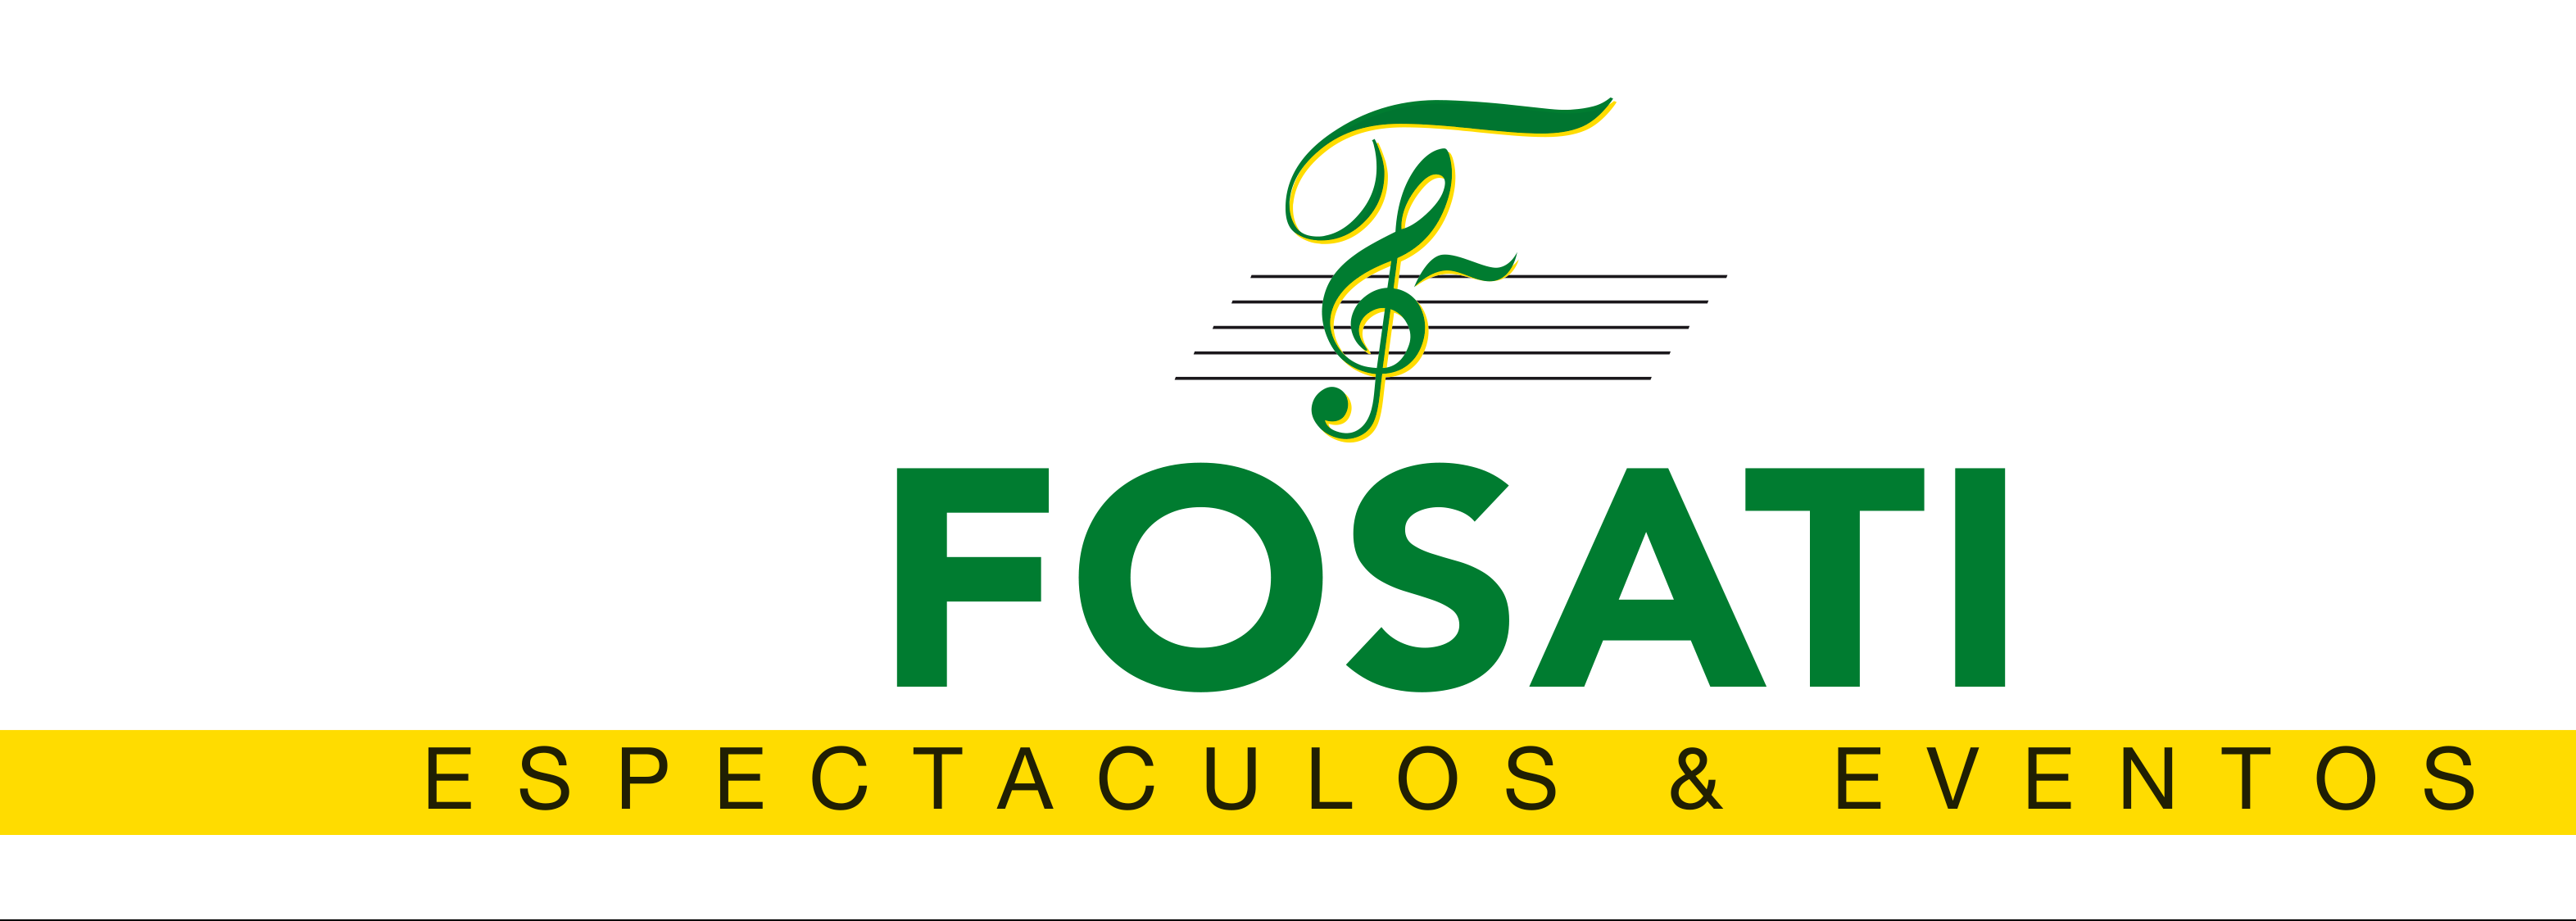 Fosati Espectaculos y Eventos